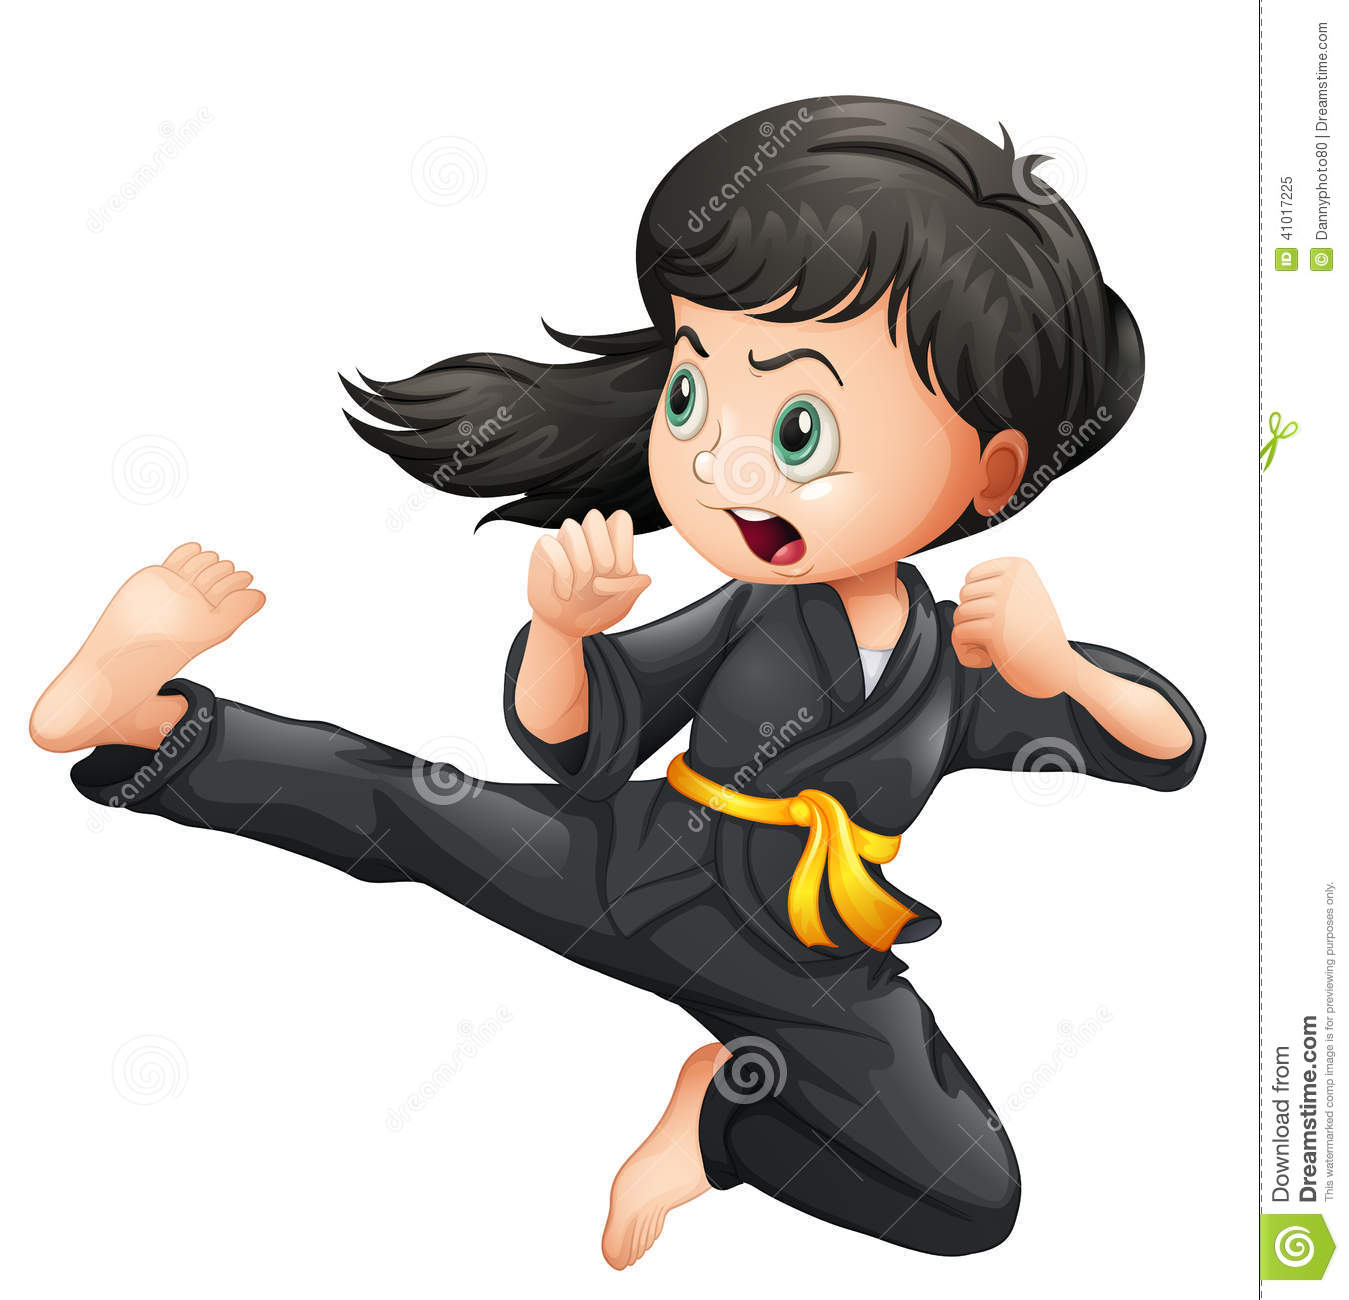 Illustration of a brave girl doing karate on a white background.